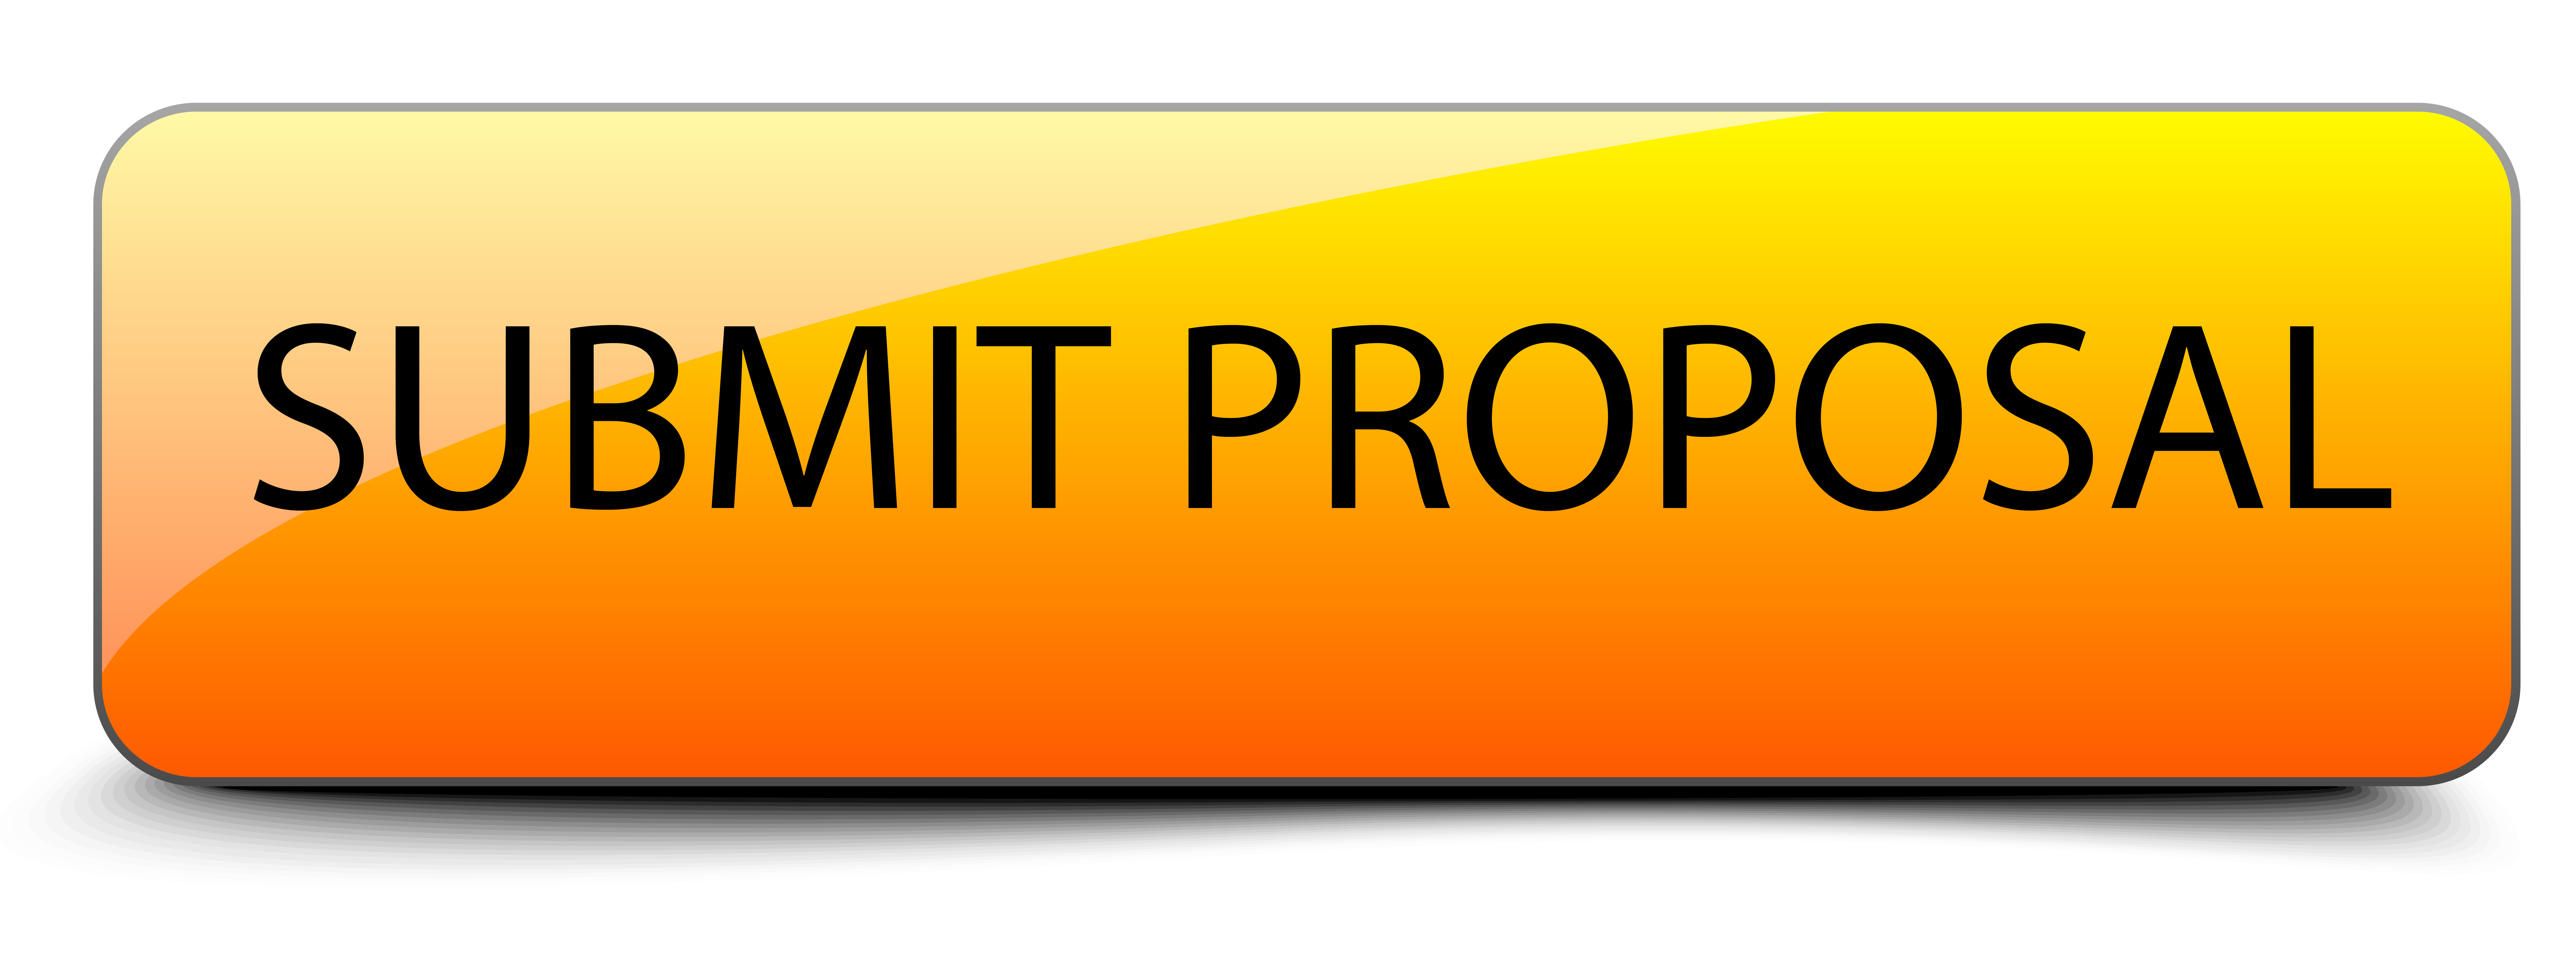 submit proposal button-01